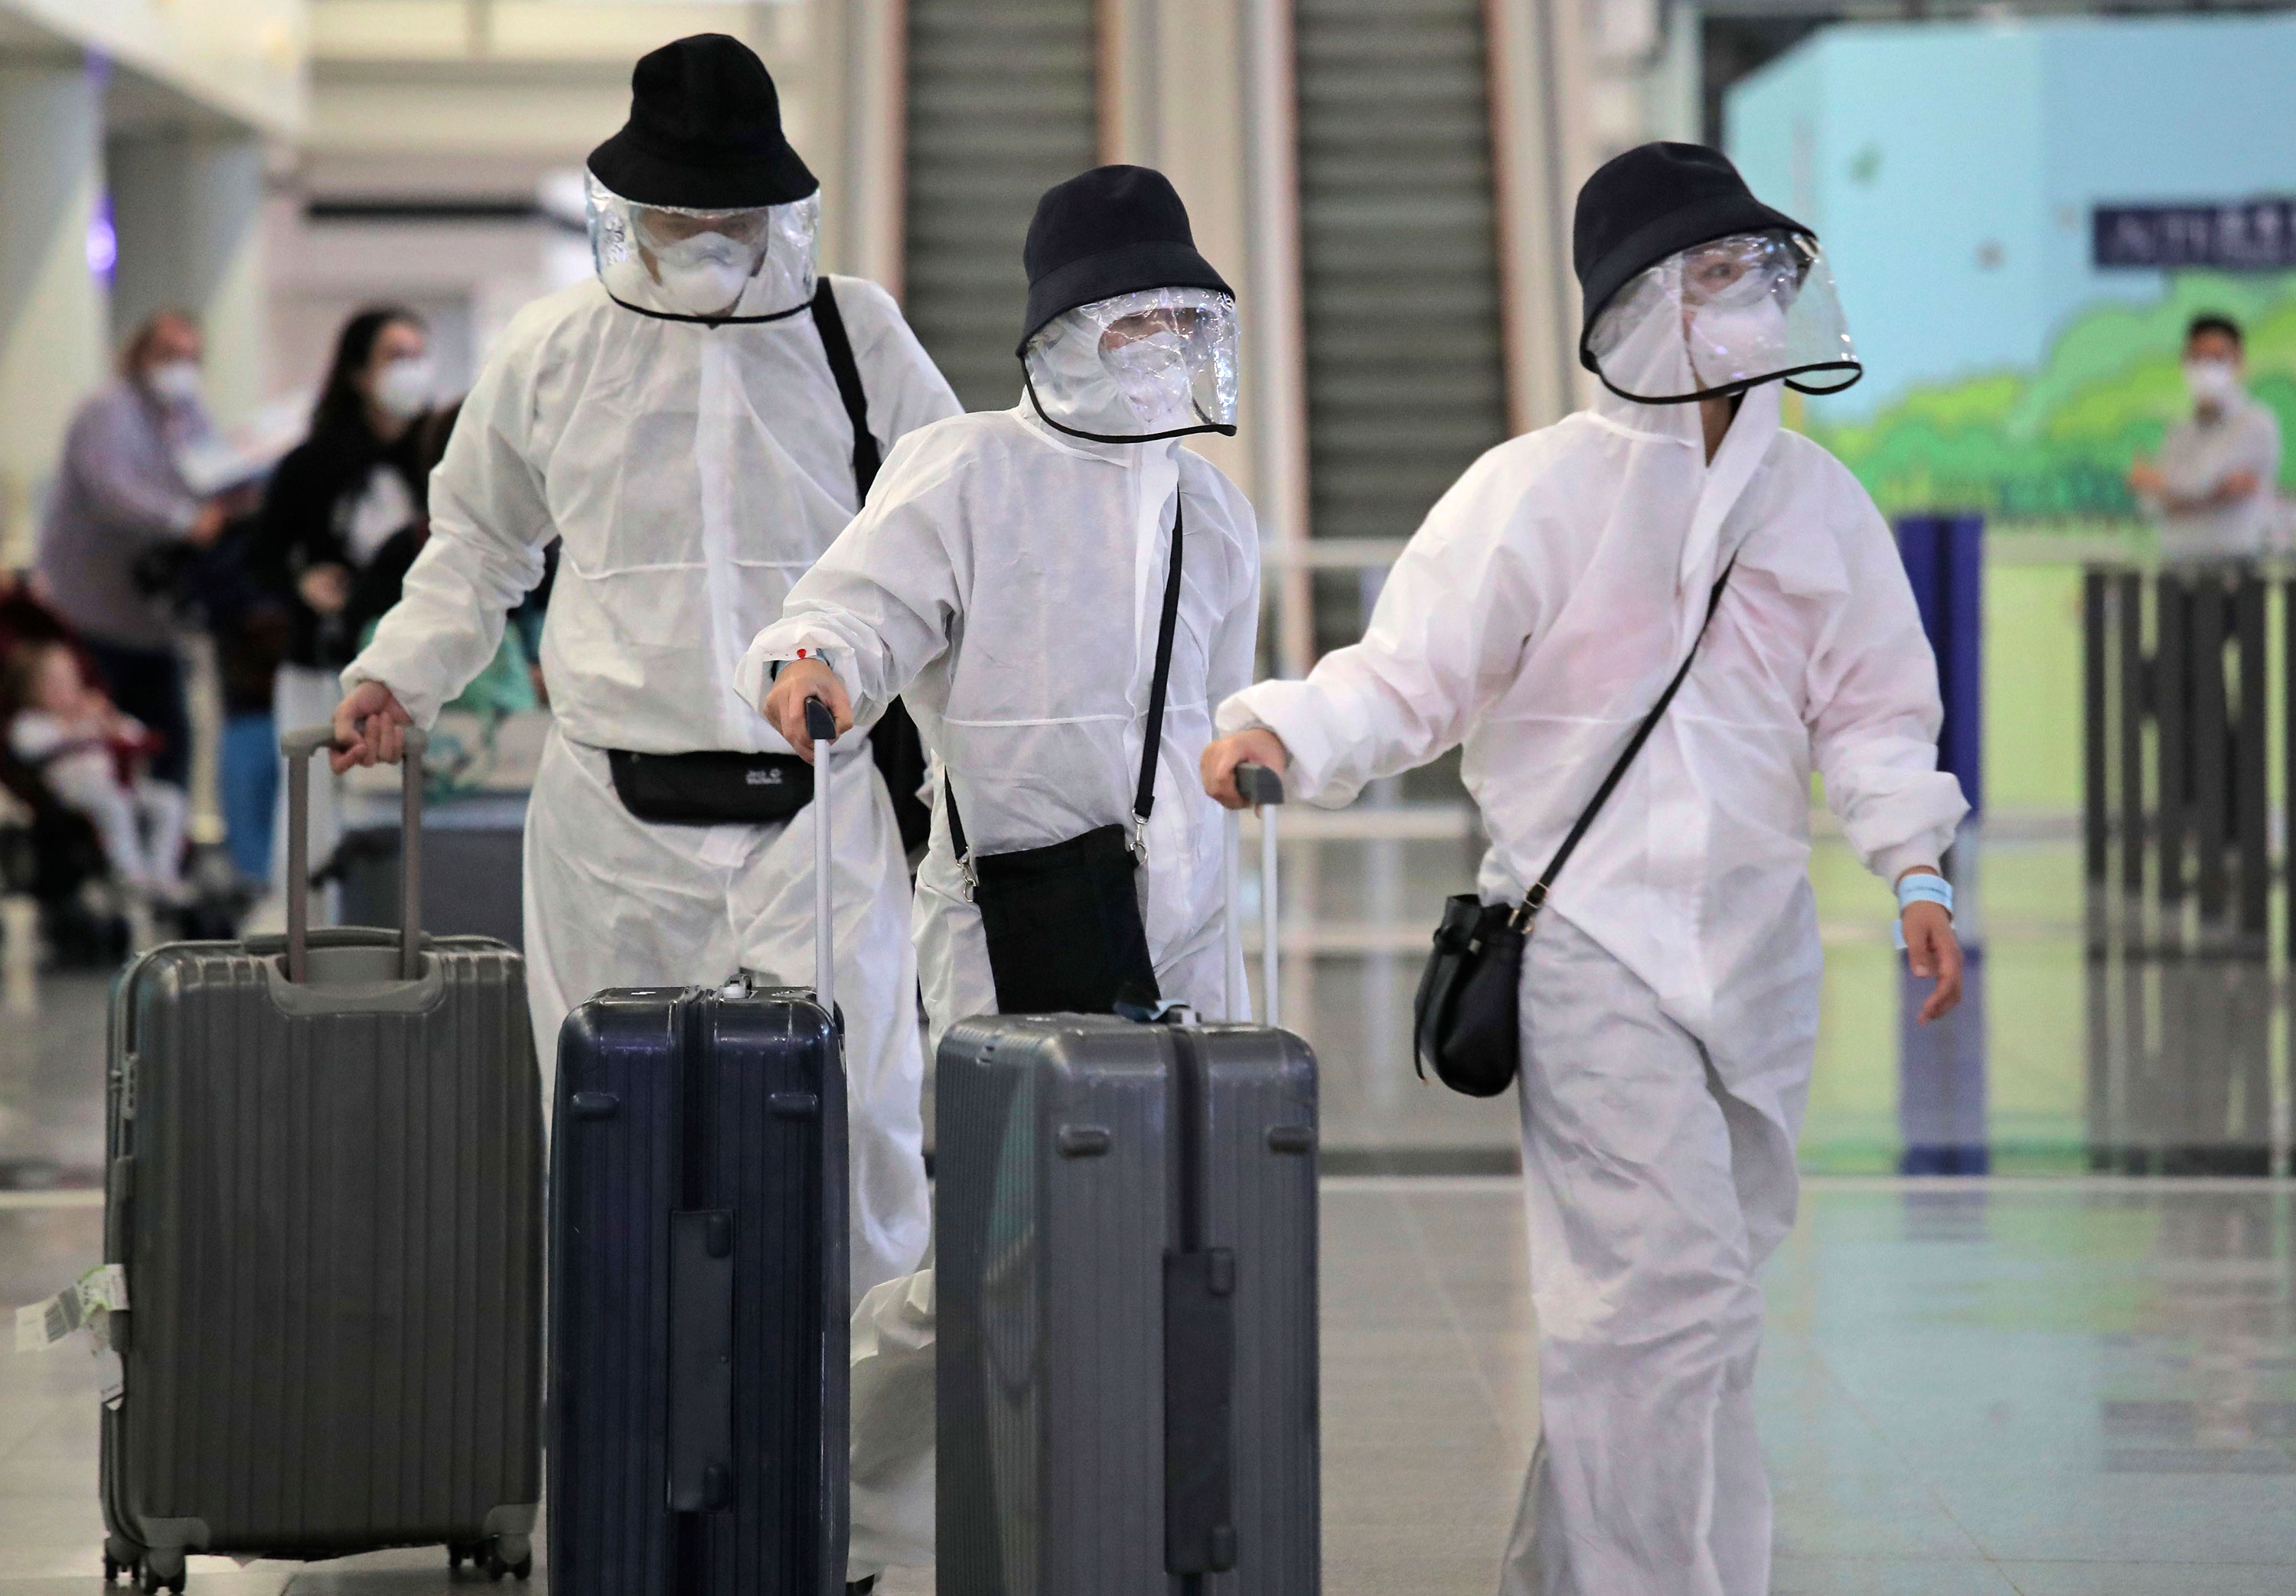 Passengers wear protective suits and face masks as they arrive at Hong Kong airport, Monday, March 23, 2020.